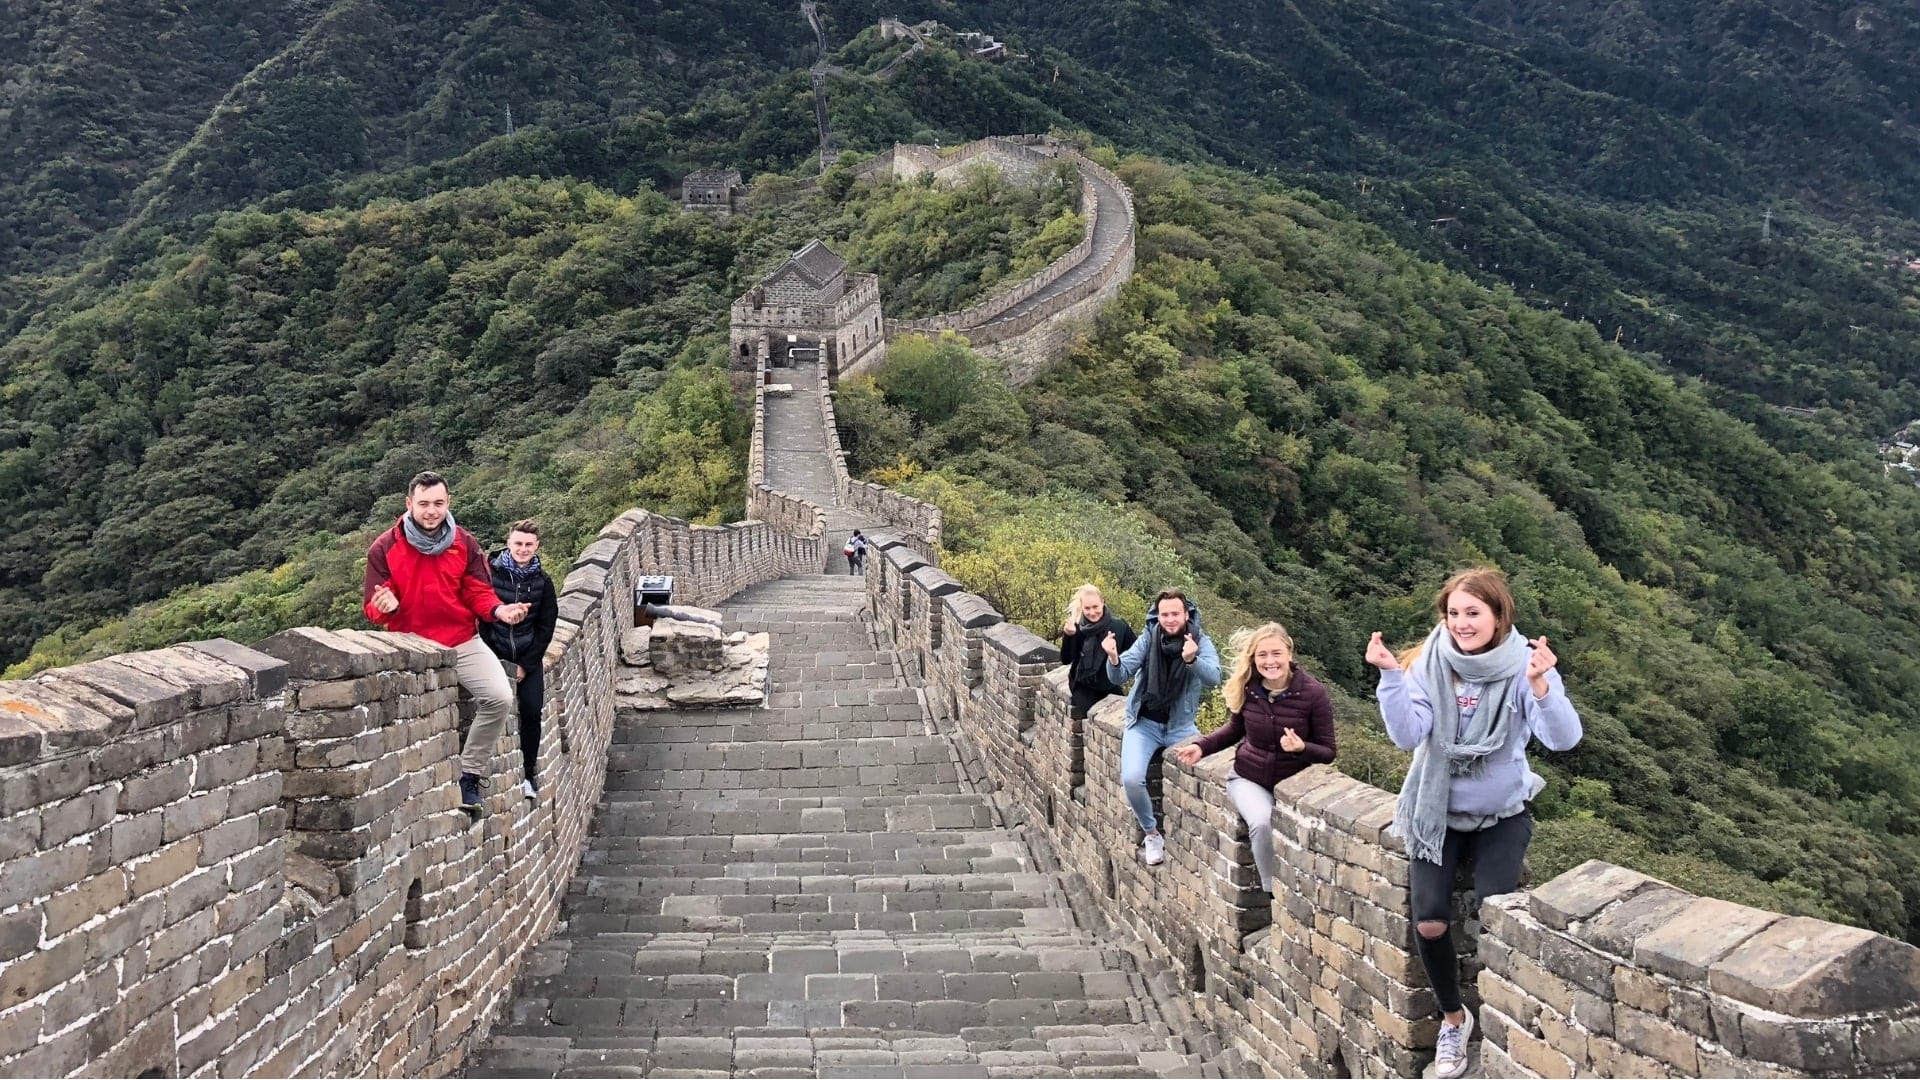 Students are sitting on a stone wall that goes over mountains in China.